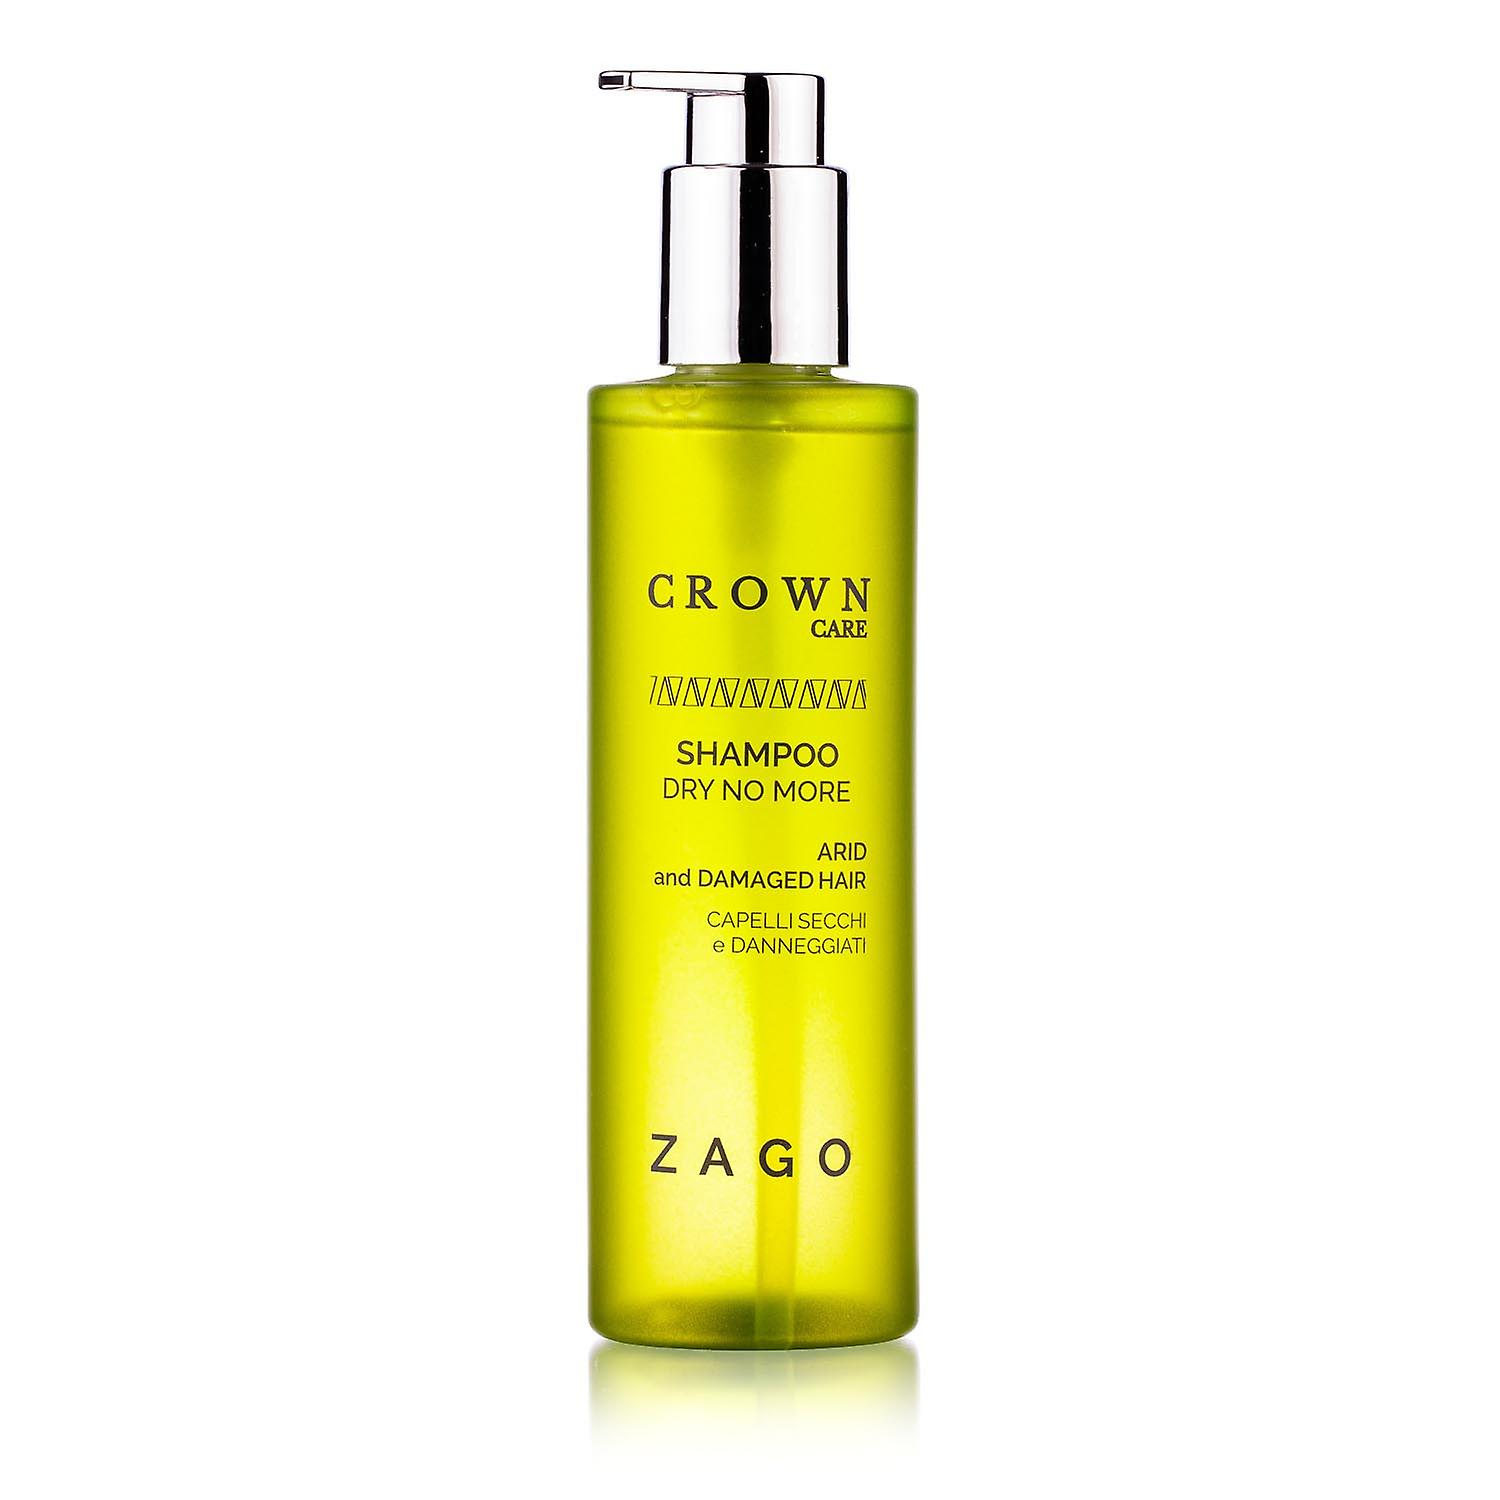 Dry No More Shampoo for Dry and Damaged Hair Crown Care